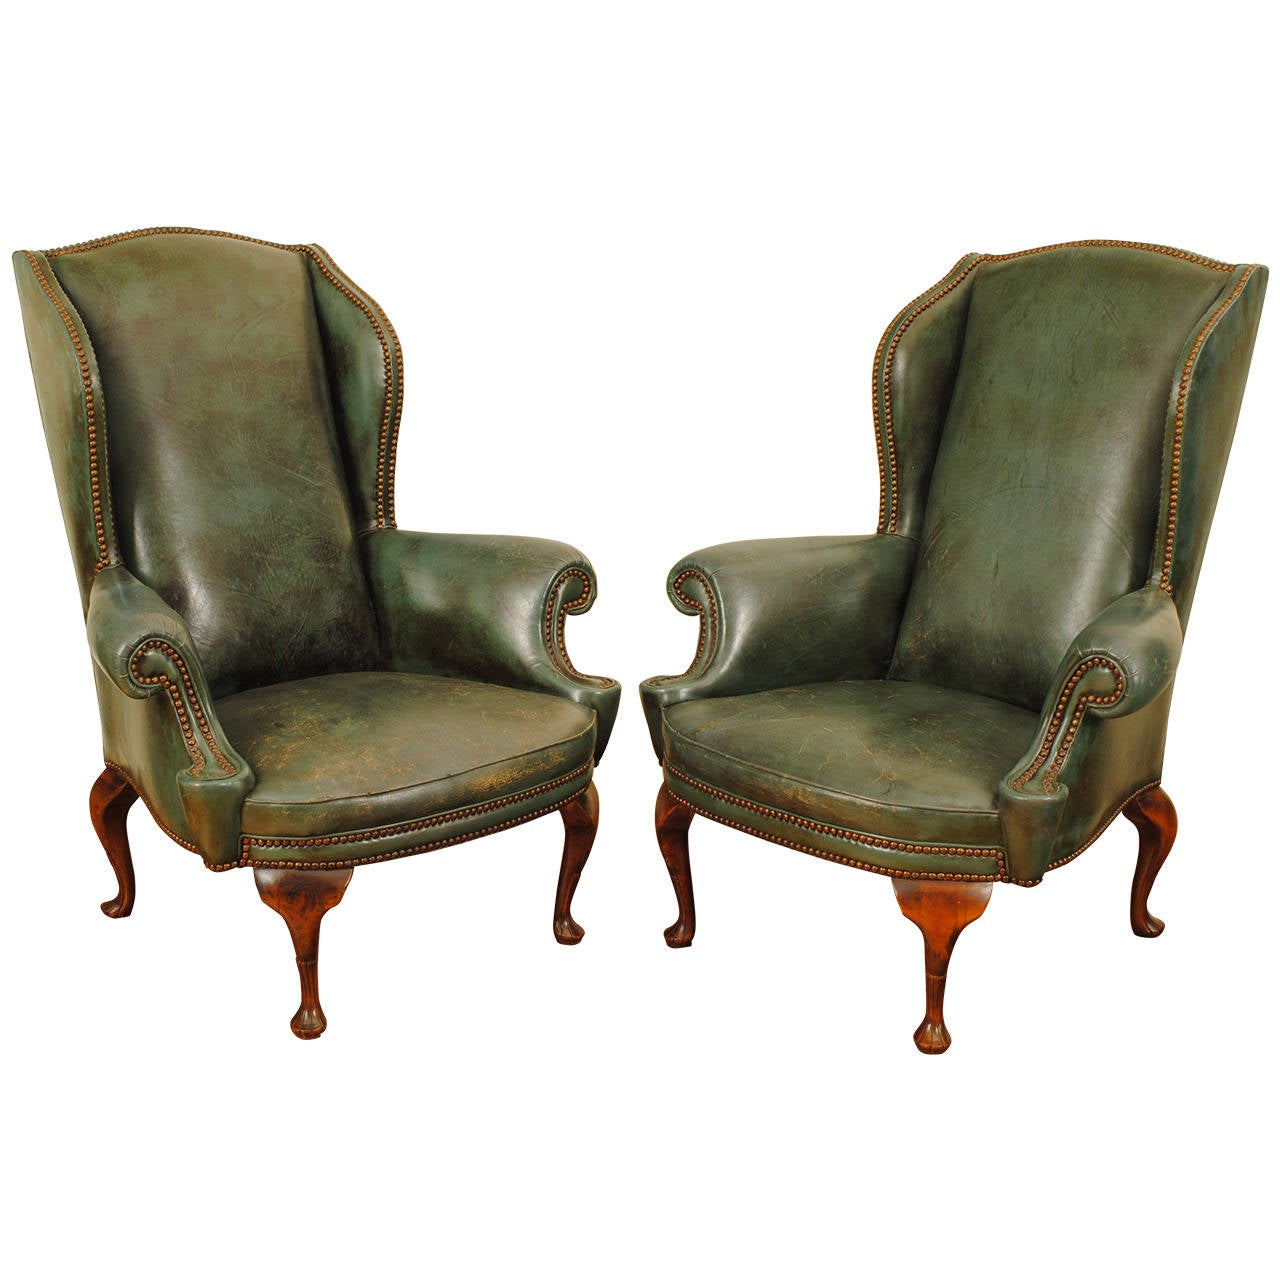 Queen Chairs Pair Of Italian Queen Anne Style Walnut And Leather